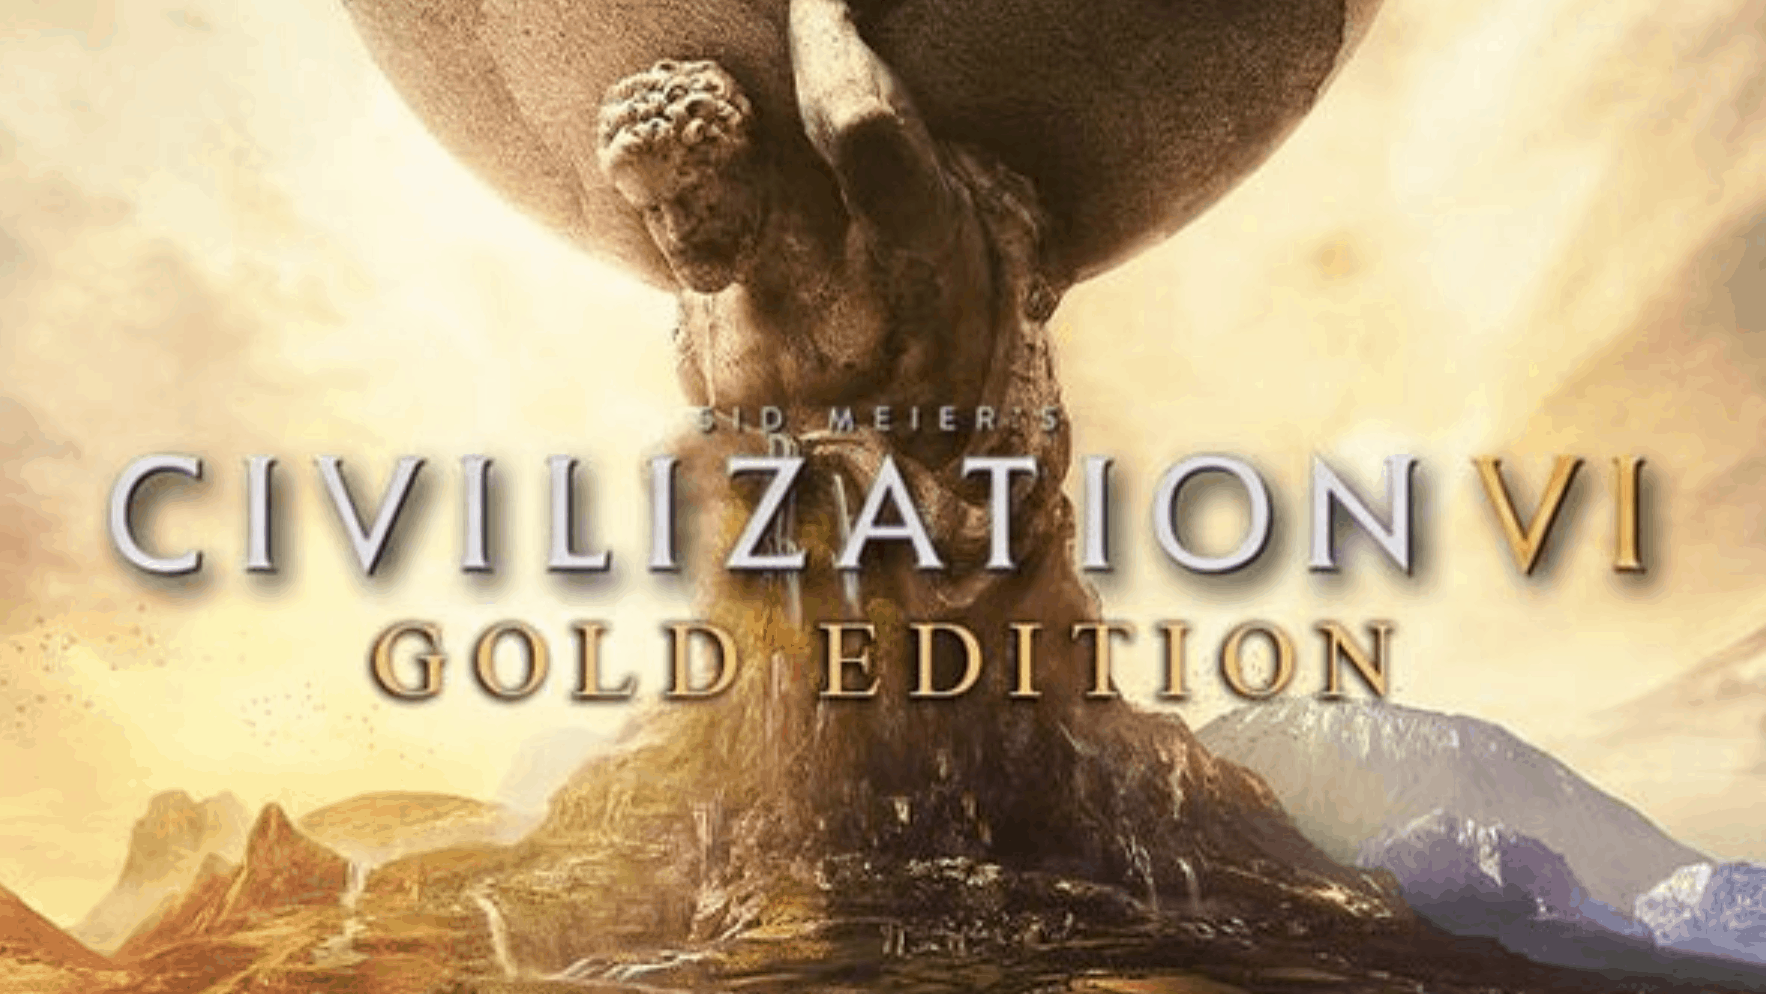 Sid Meier's Civilization VI Gold Edition, Complete, and Gathering Storm are up for sale 1